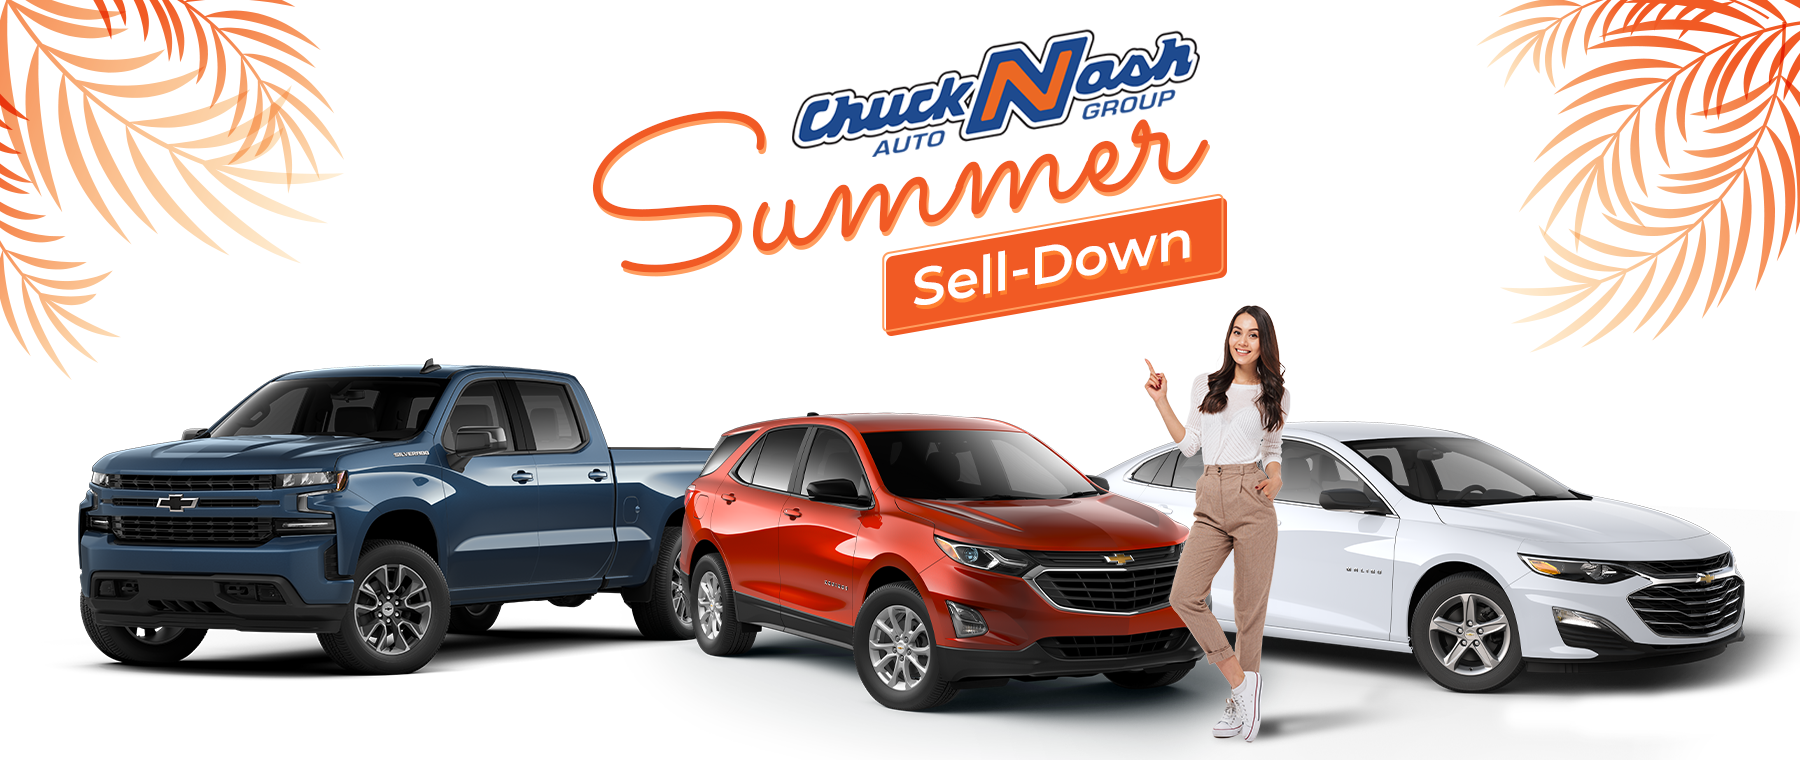 Summer Sell-Down